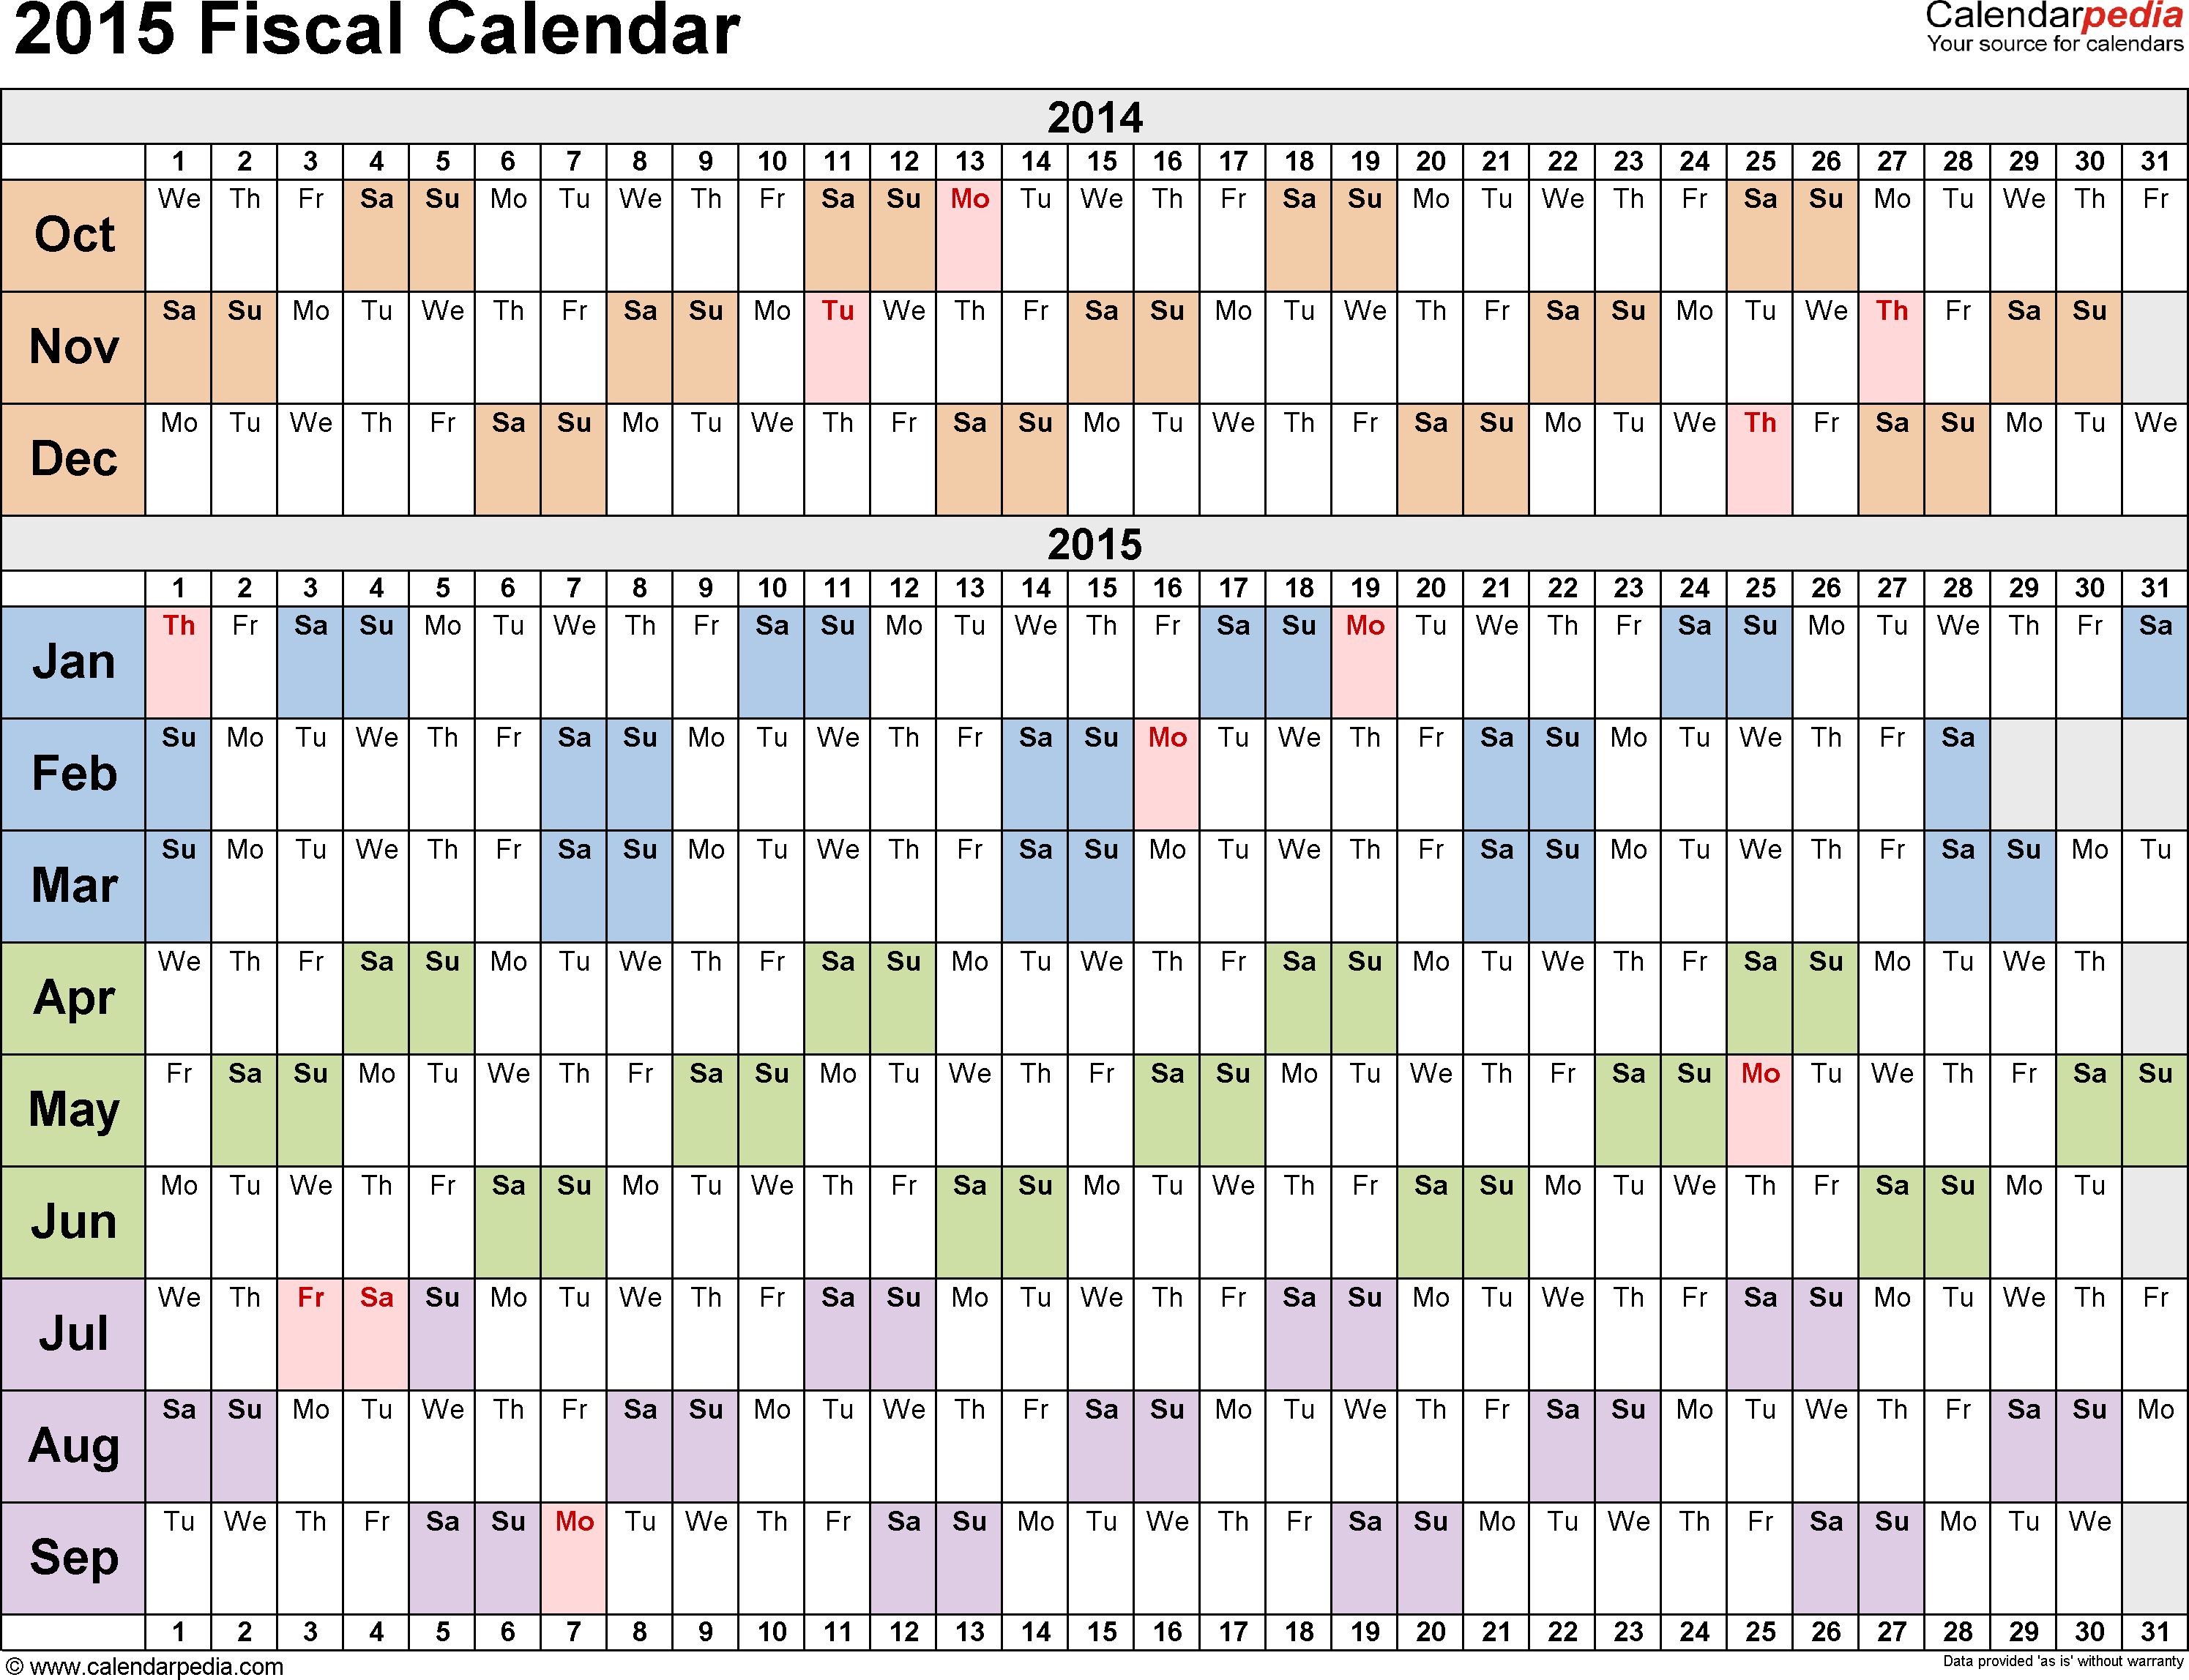 Template 3: Fiscal year calendar 2015 for PDF, landscape orientation, days horizontally (linear), 1 page